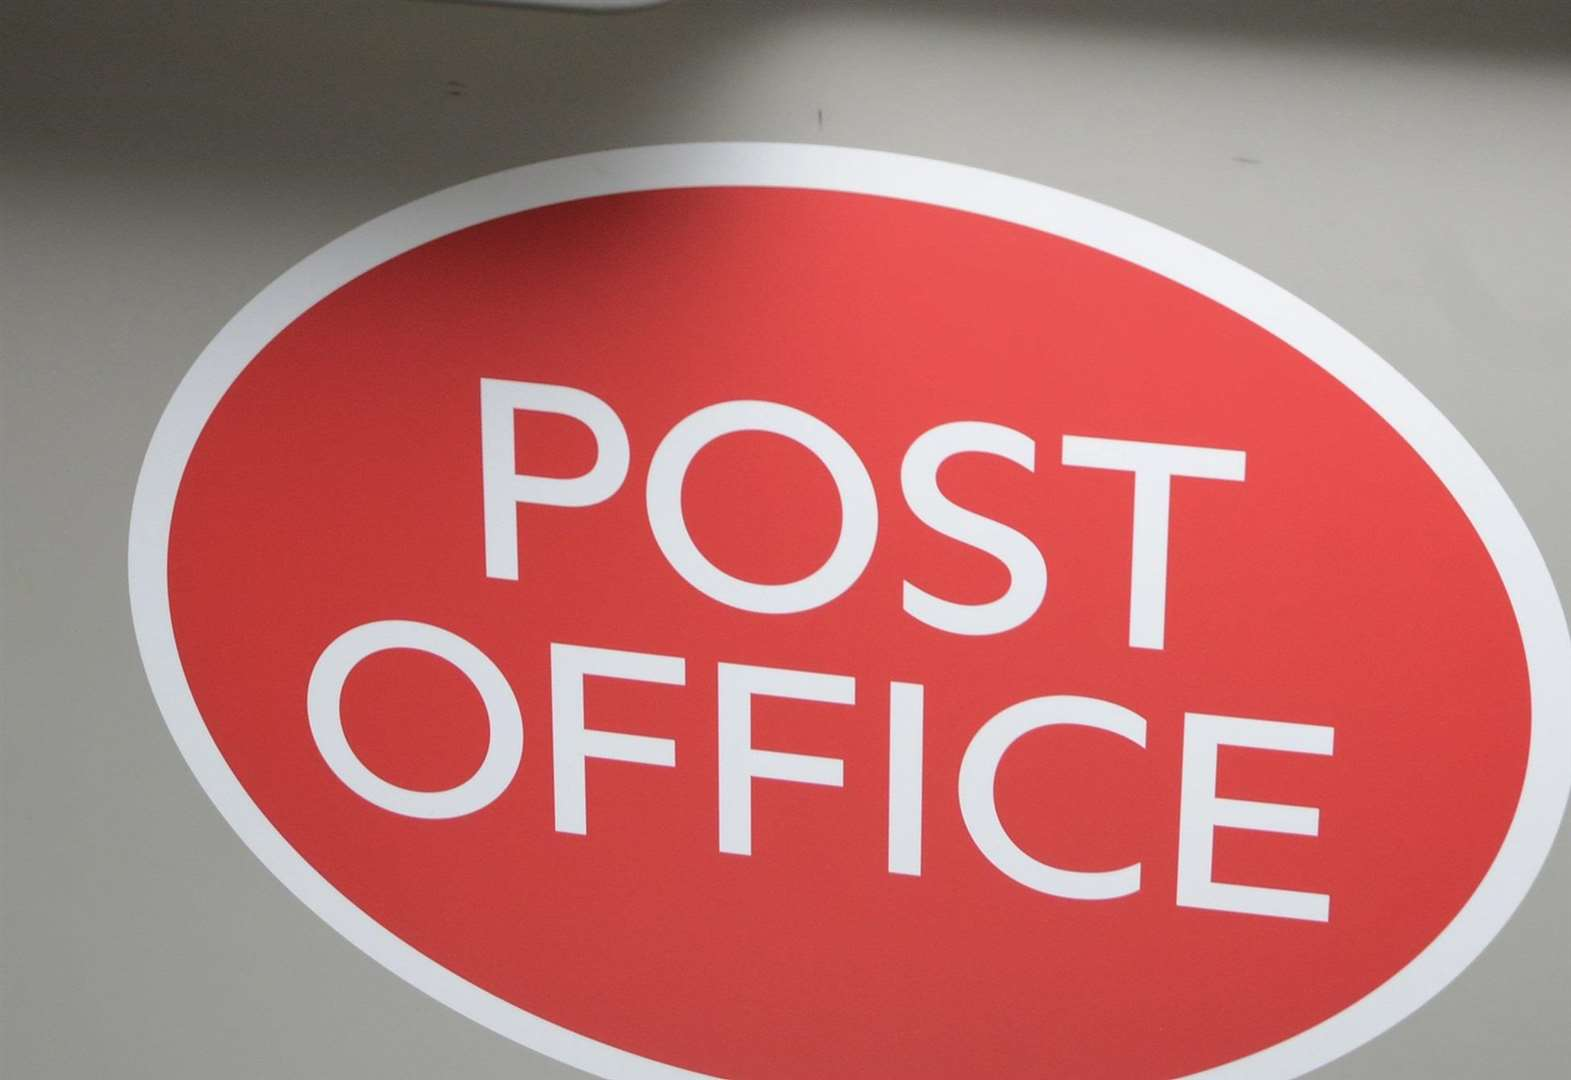 Downham Market post office set to reopen after two month closure